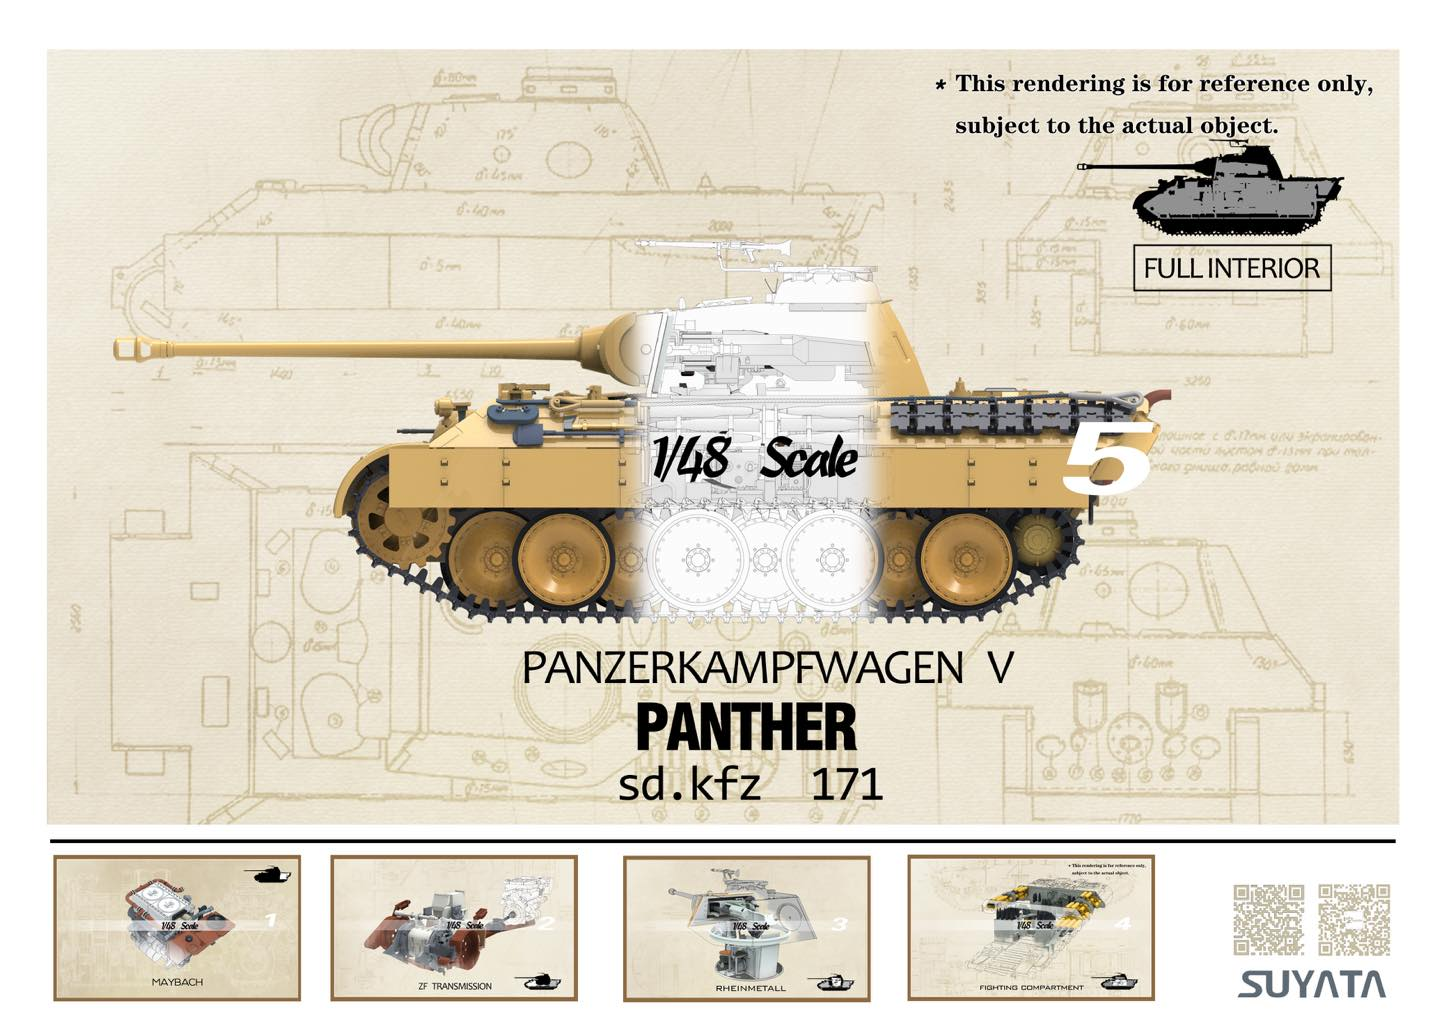 Suyata 4801 Sd.Kfz.171 Panther full interior